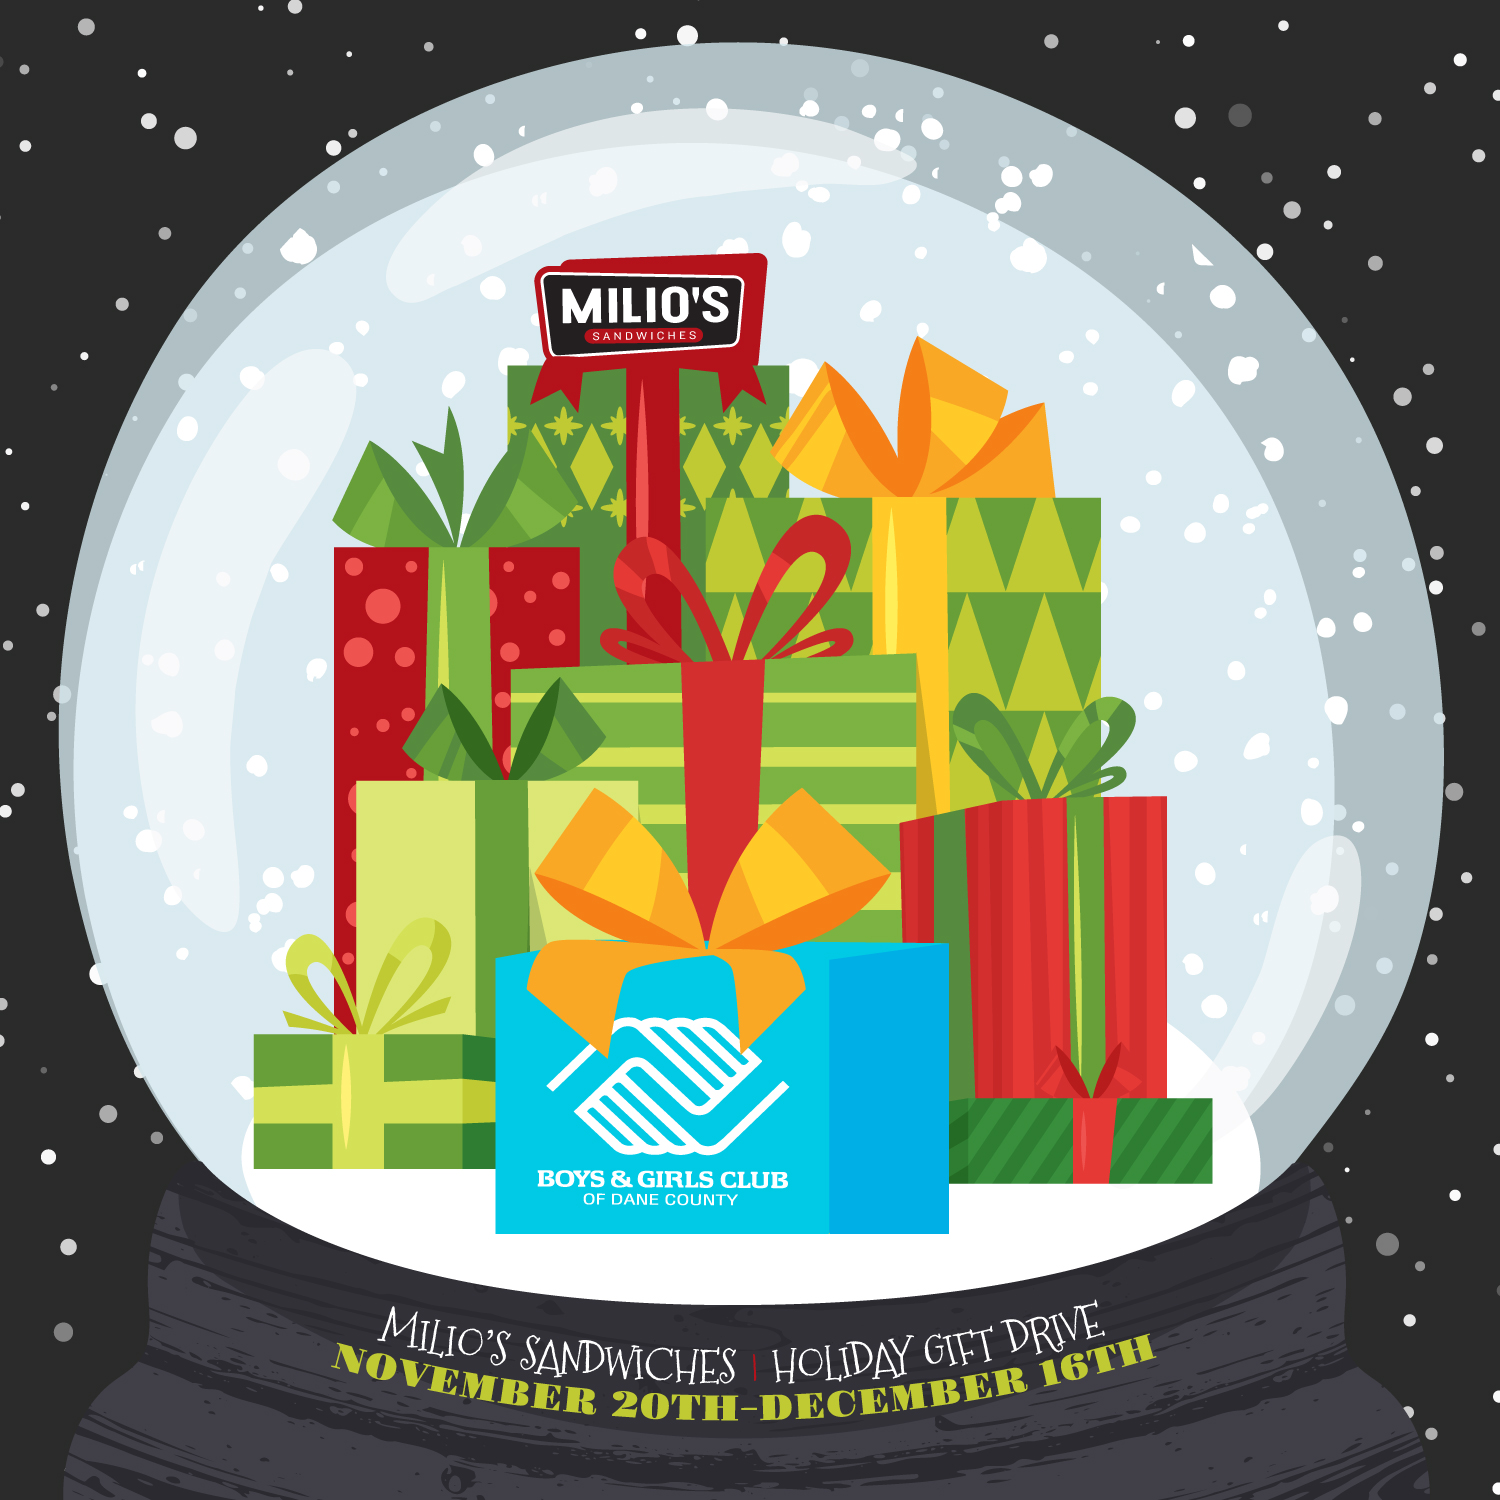 Milio's and Boys and Girls Club Holiday Gift Drive